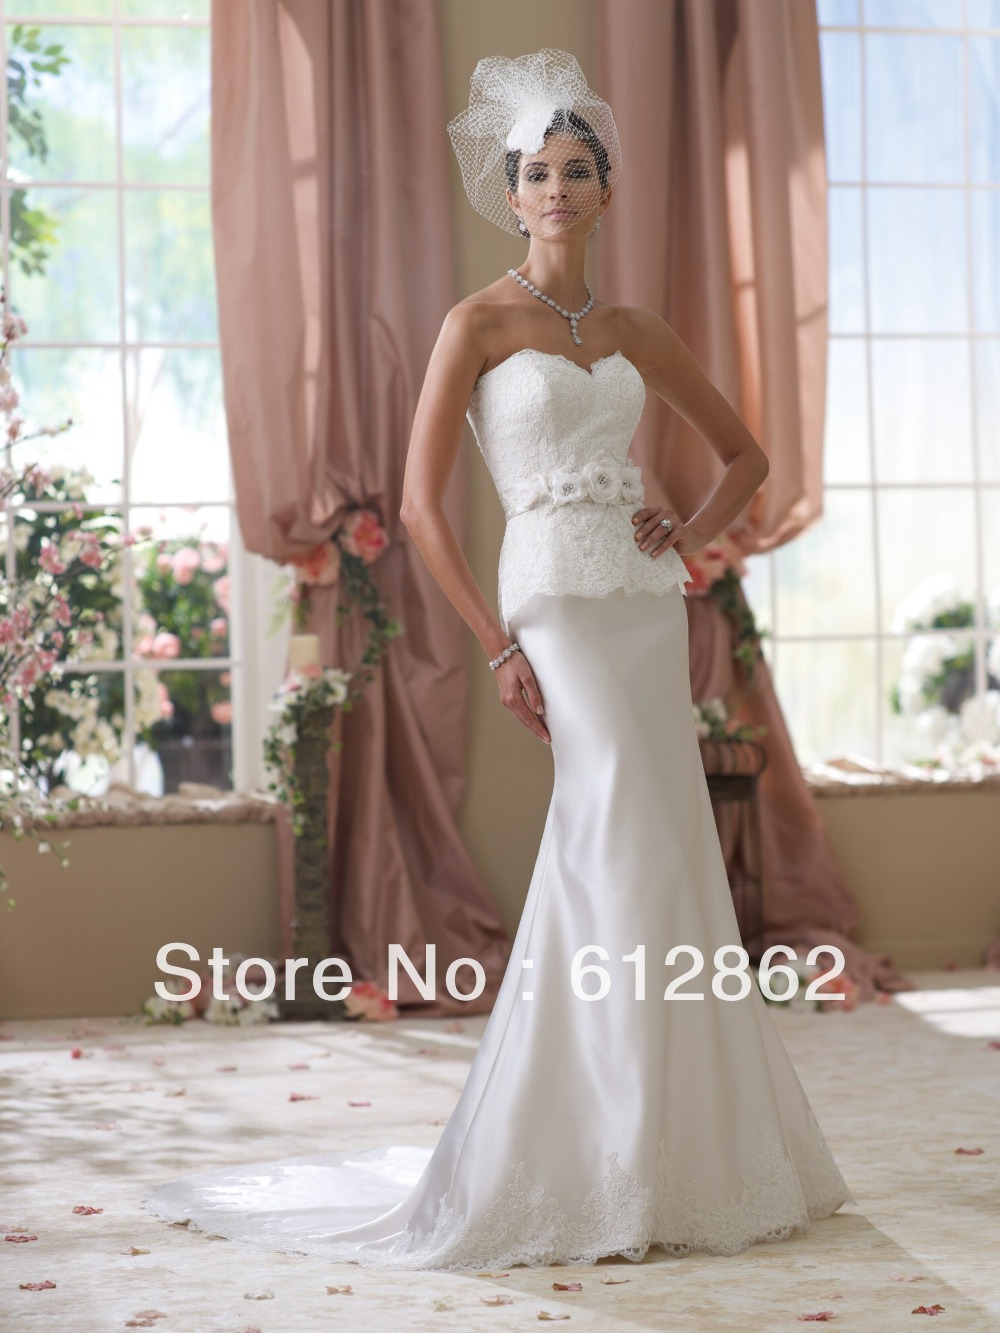 Strapless Sheath Long Tran Lace Appliques Bodice Satin Skirt Wedding ...